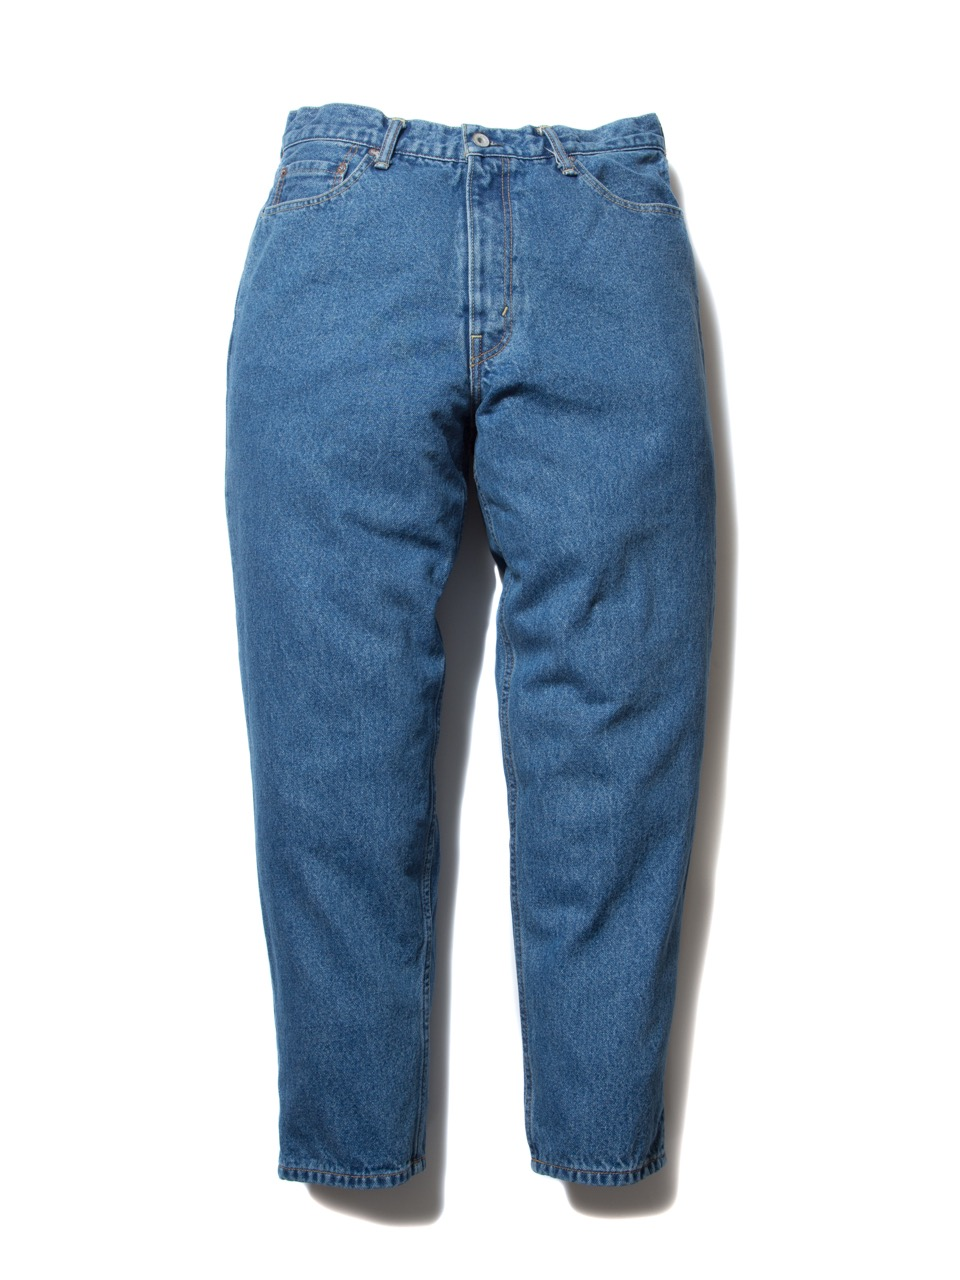 COOTIE 5 Pocket Baggy Denim